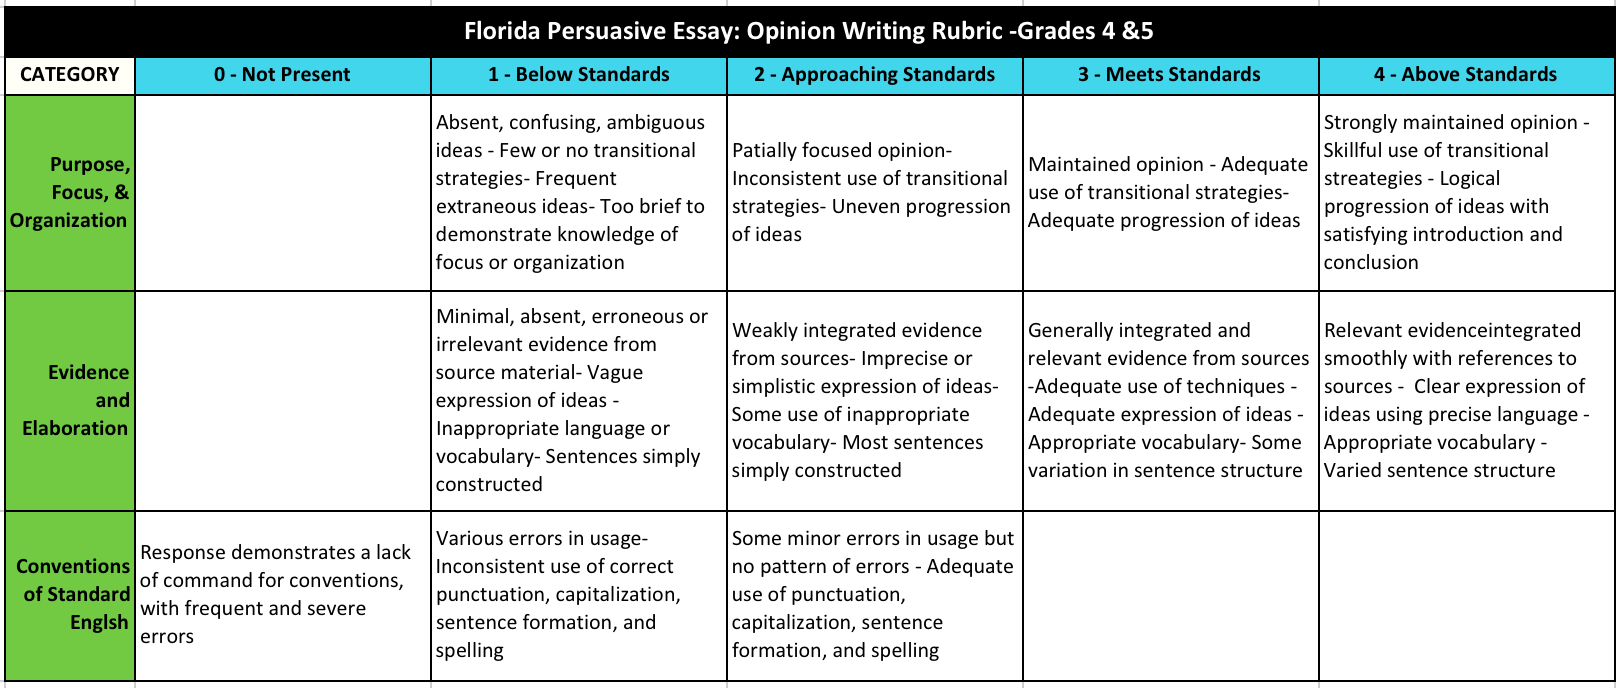 rubrics florida 4 5th grade persuasive opinion writing rubric